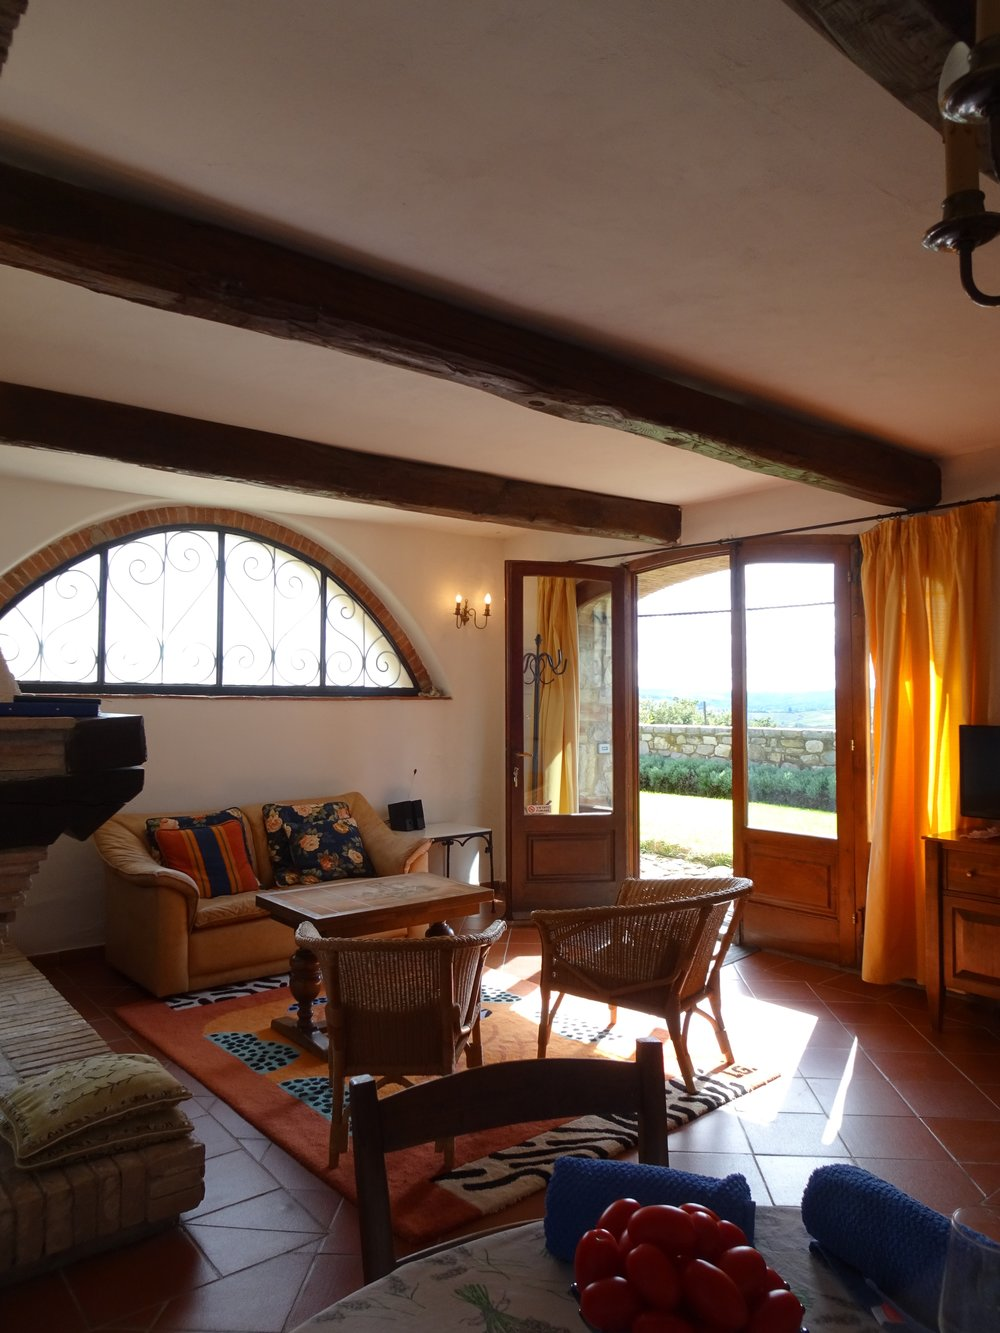 Click for more info.Price is for: 7 nights